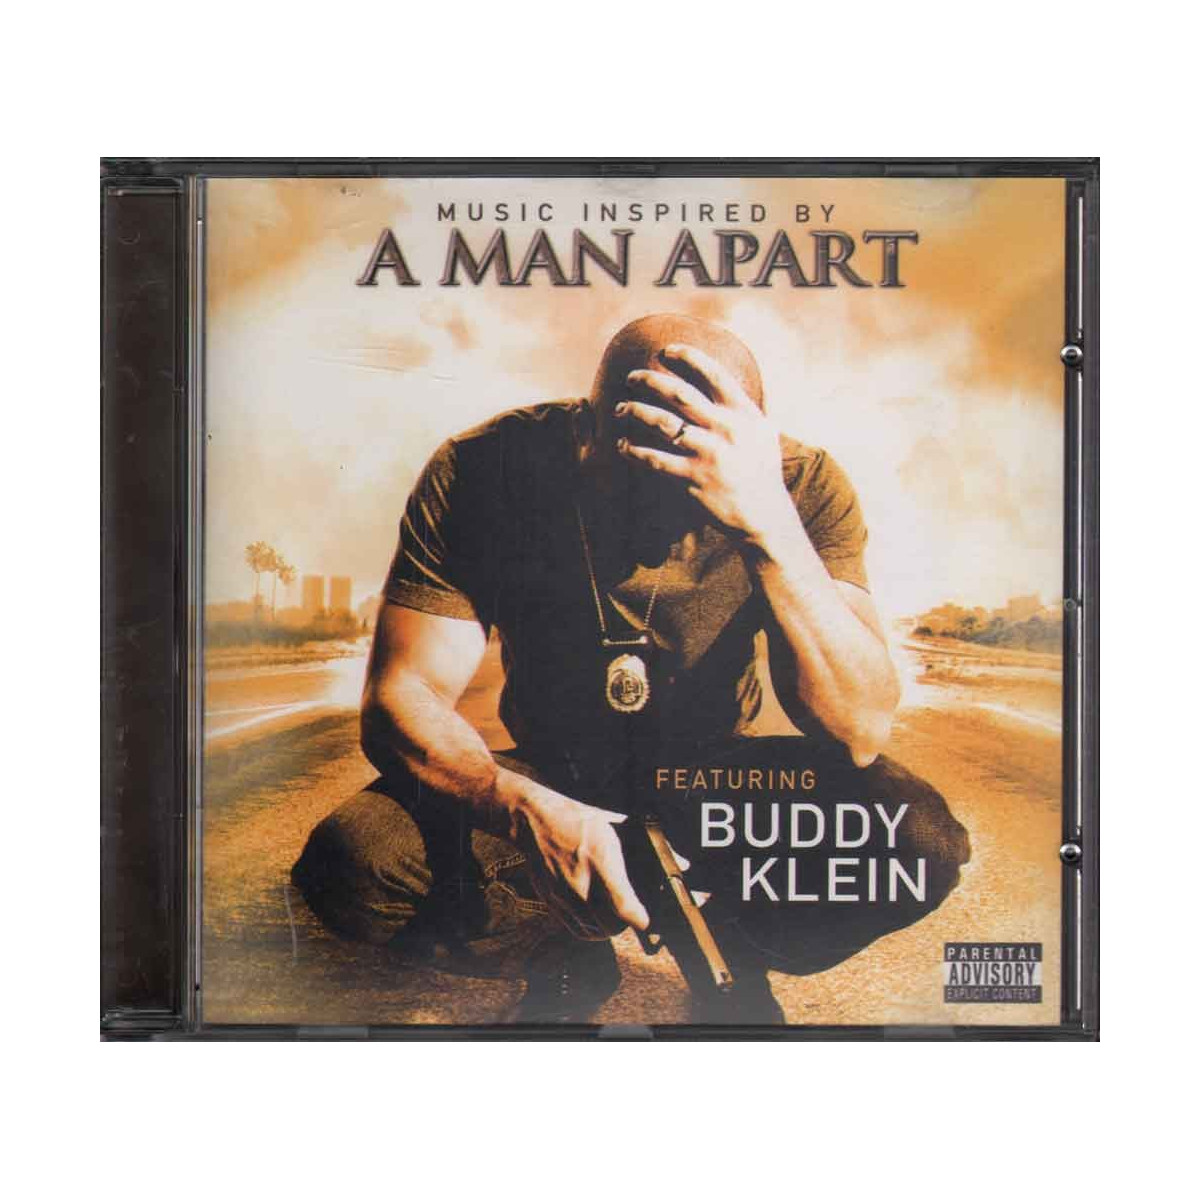 Buddy Klein CD A Man Apart OST Soundtrack Nuovo 8717155997421